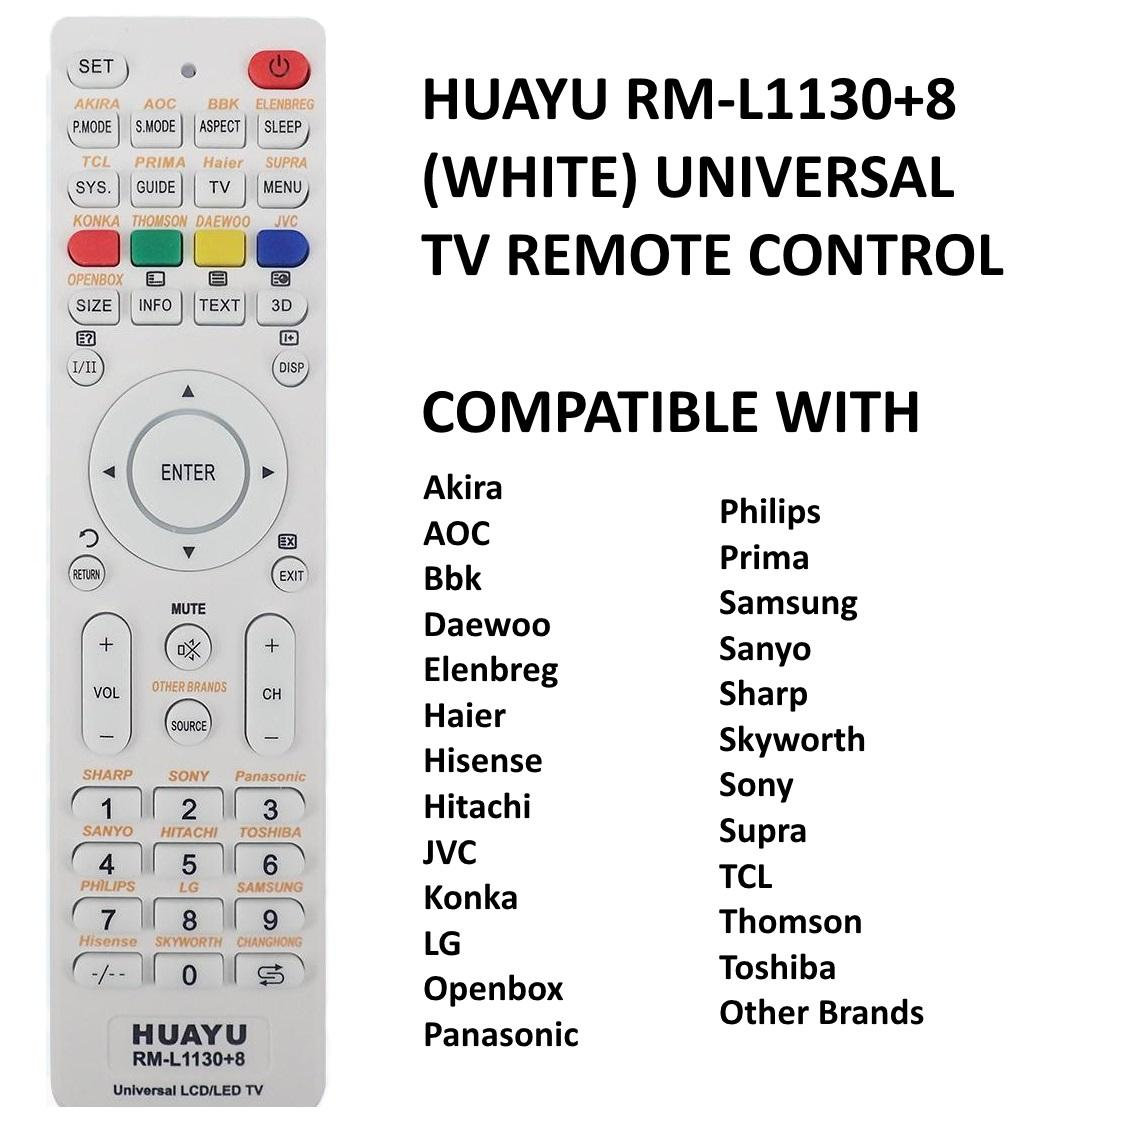 Remote Control Accessories for sale - Remote Accessories